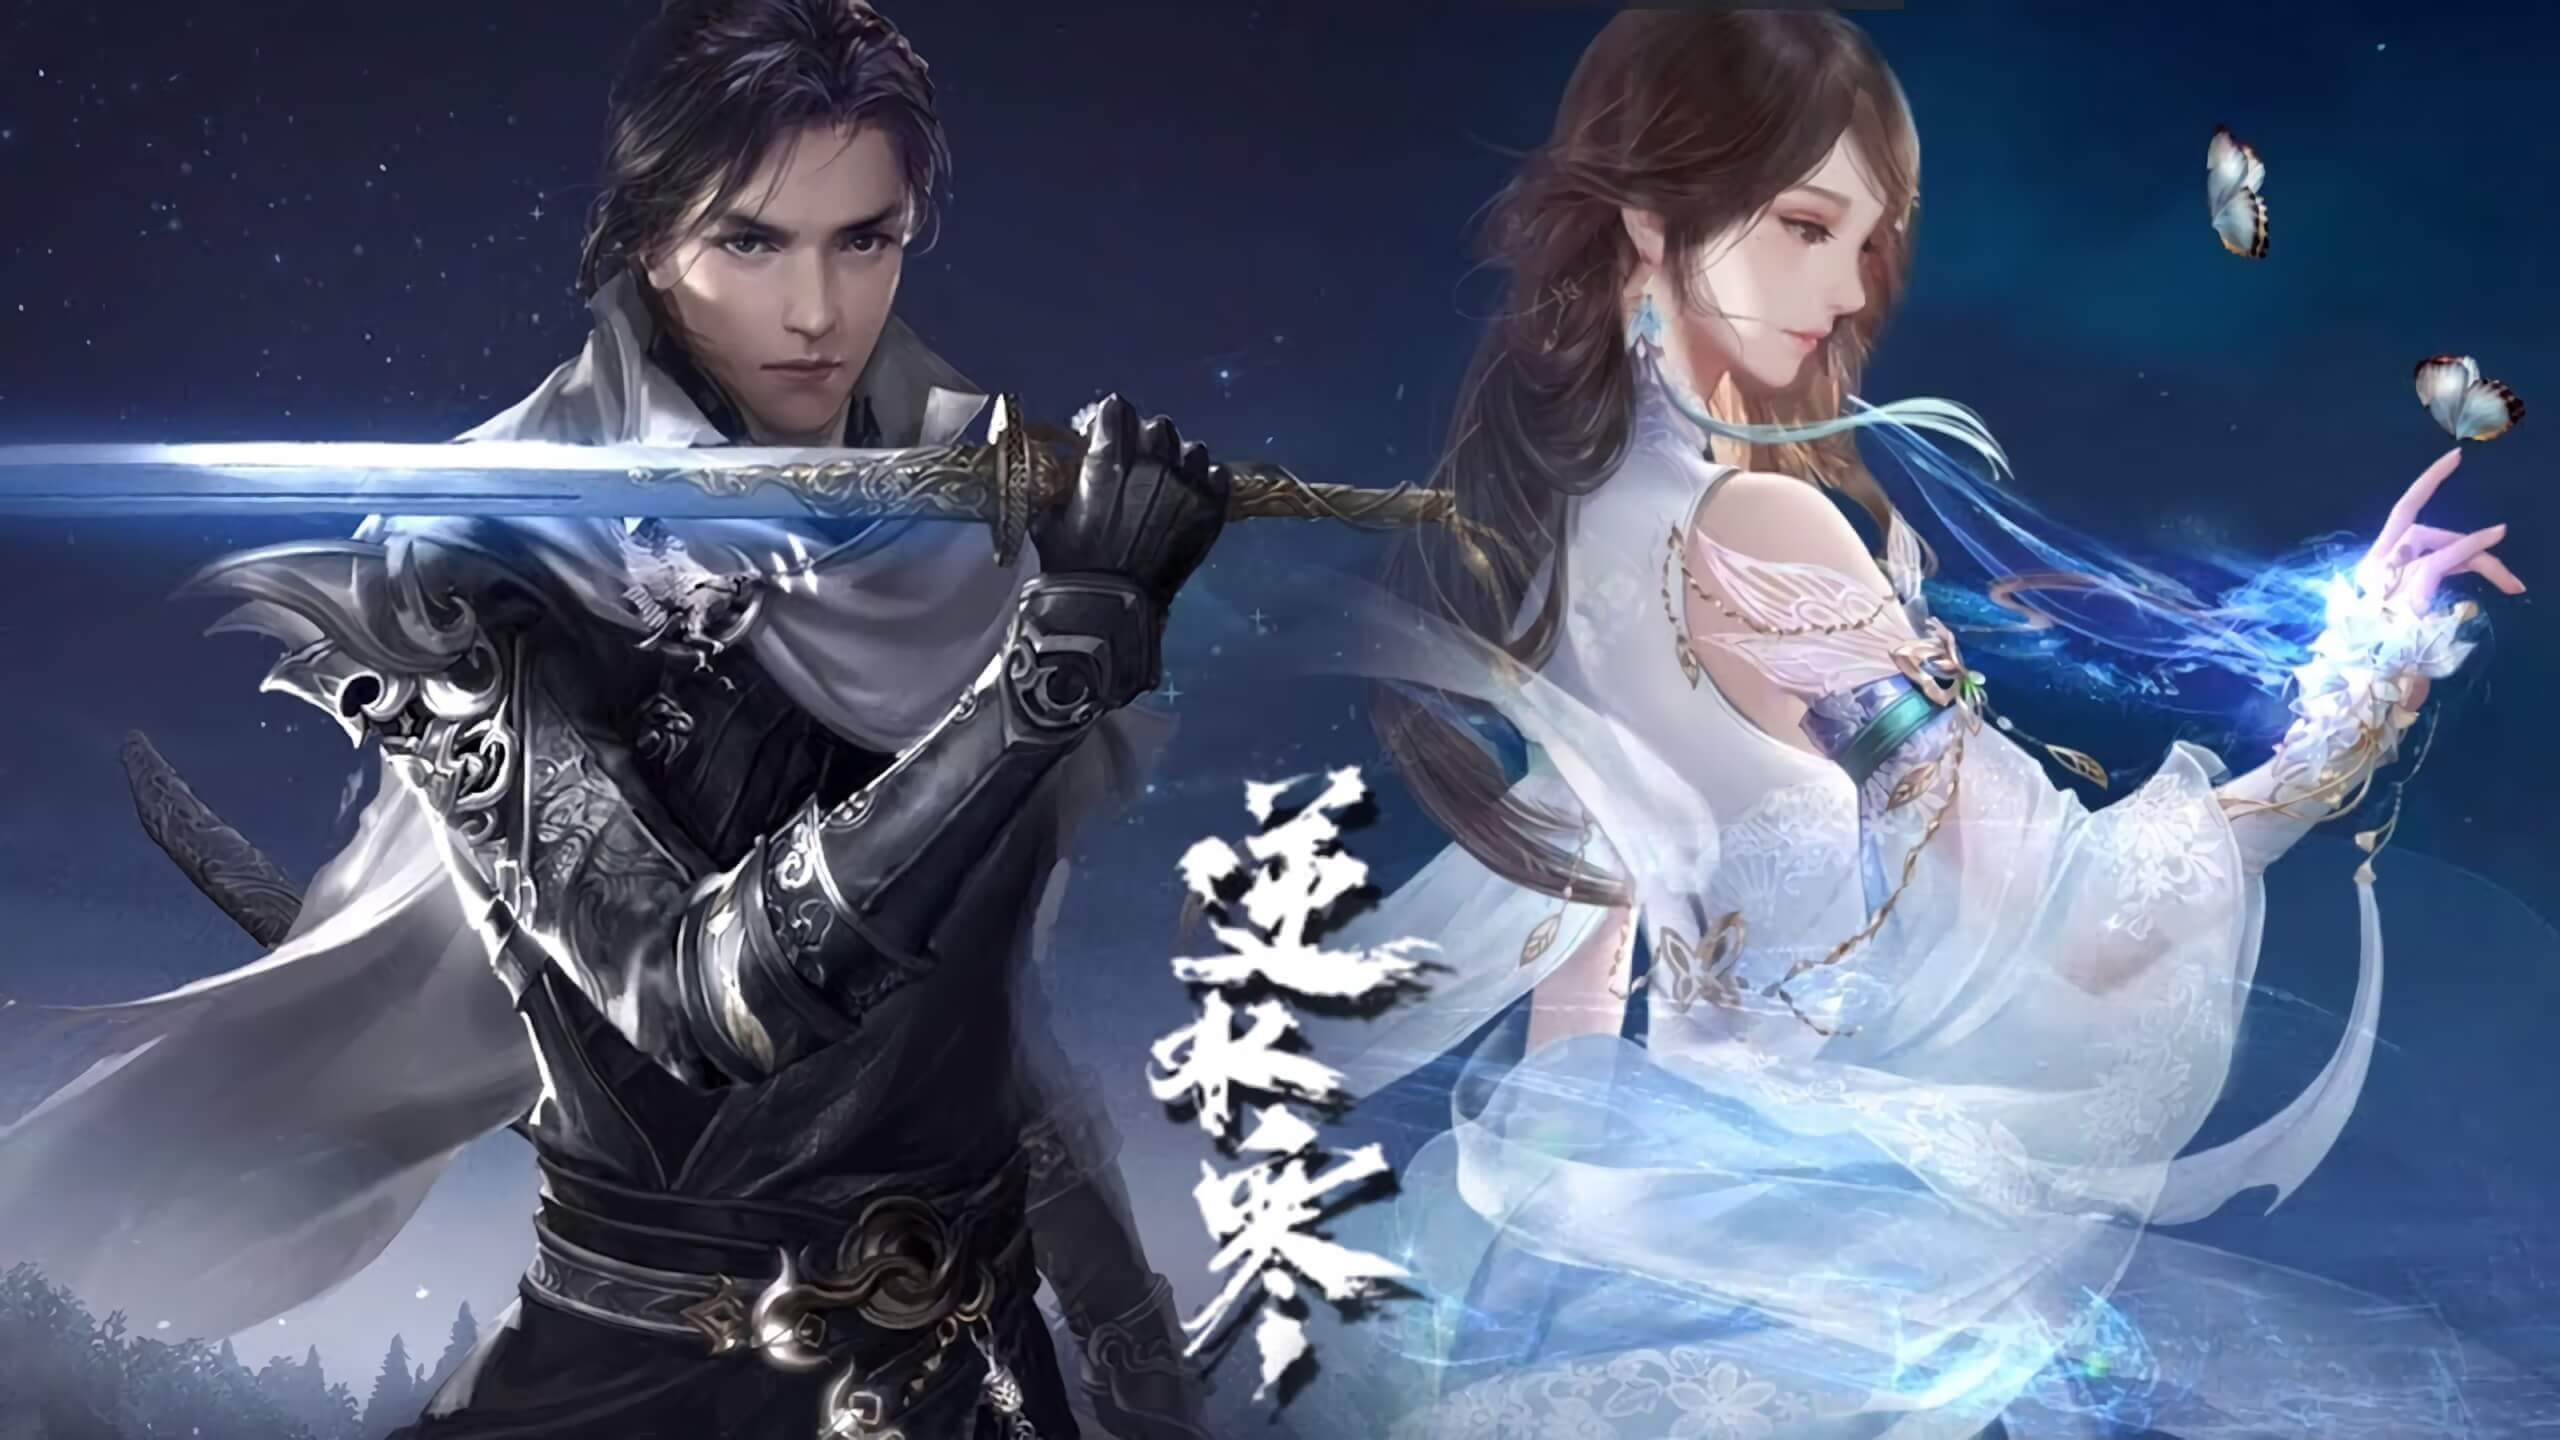 Man in China ordered to pay $13,000 to get his $1.4 million game avatar back